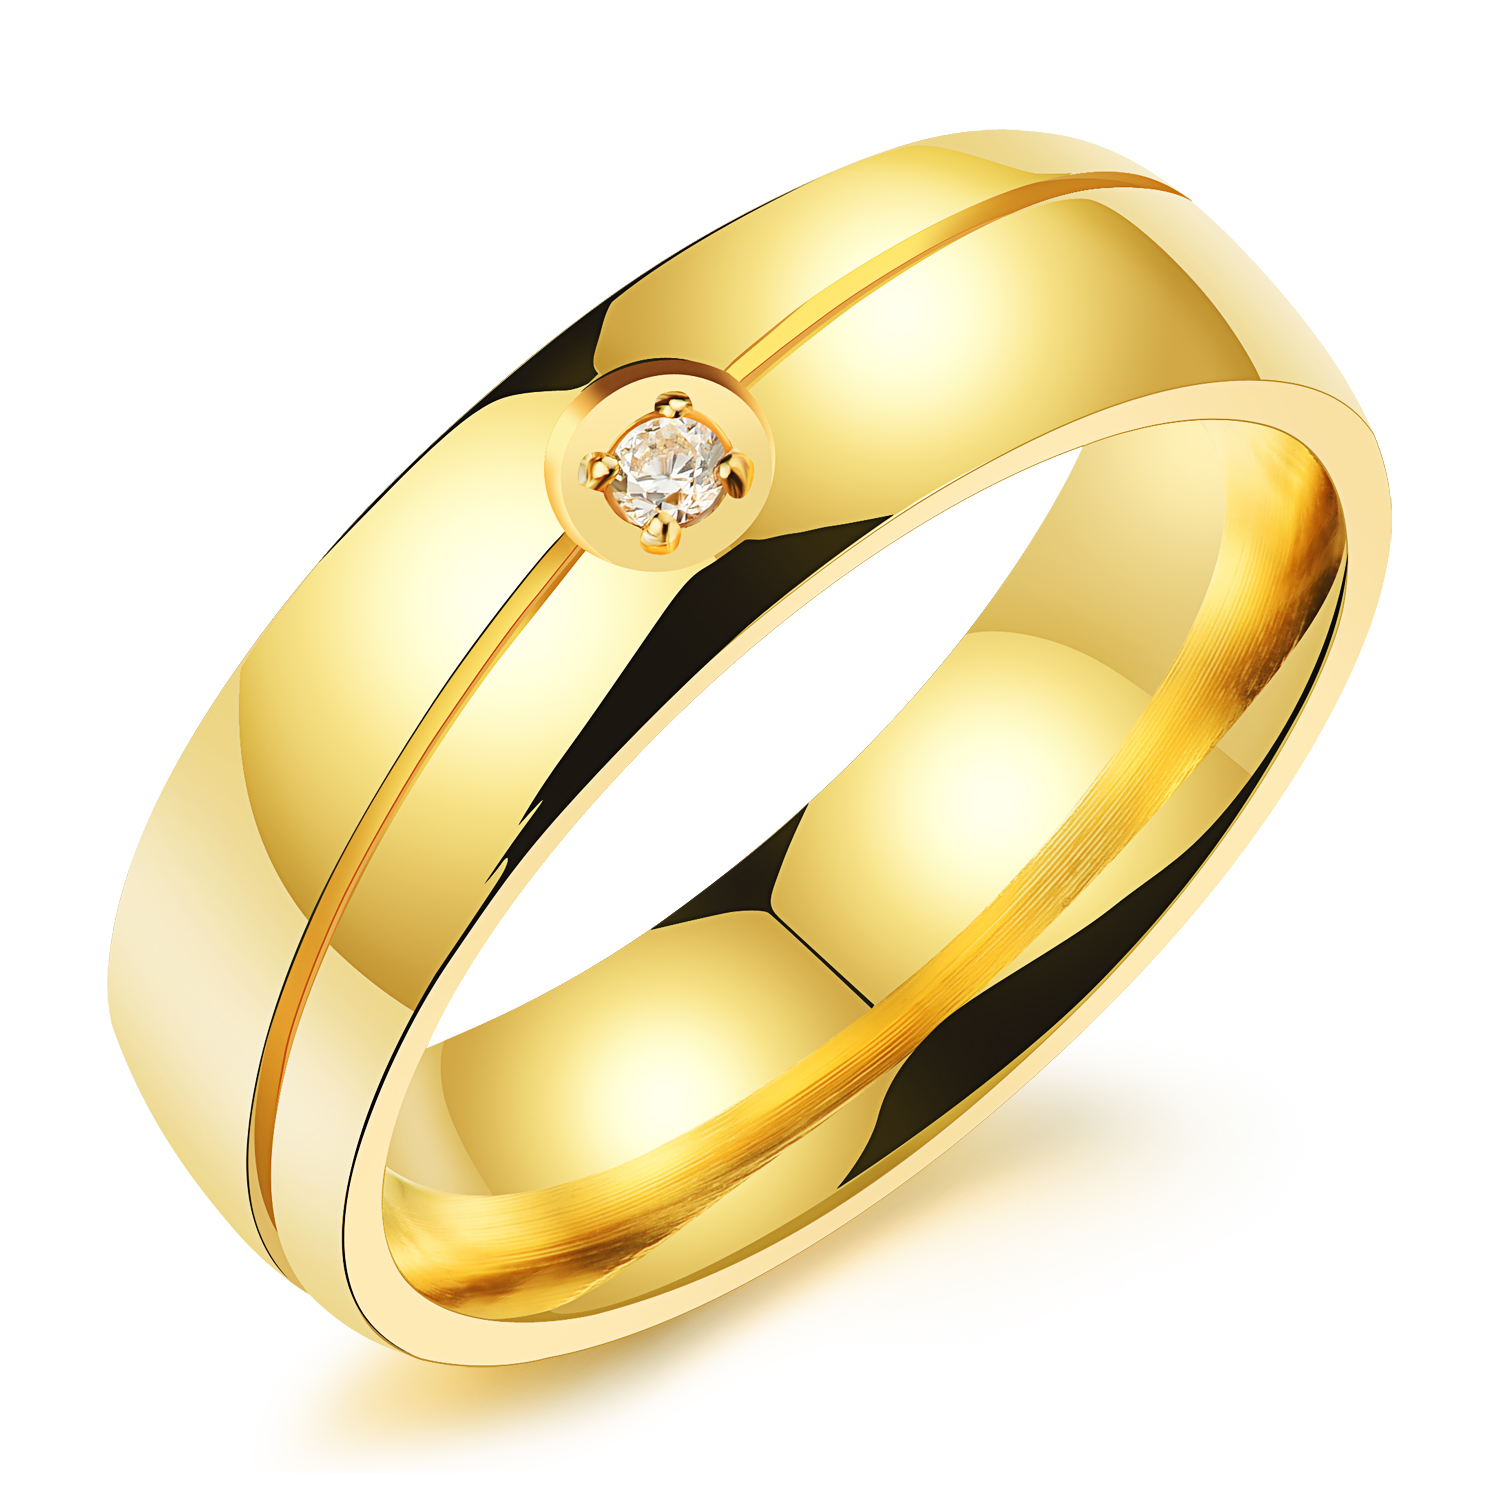 gold band pinterest free ring designs elegant jewellery rings wedding of